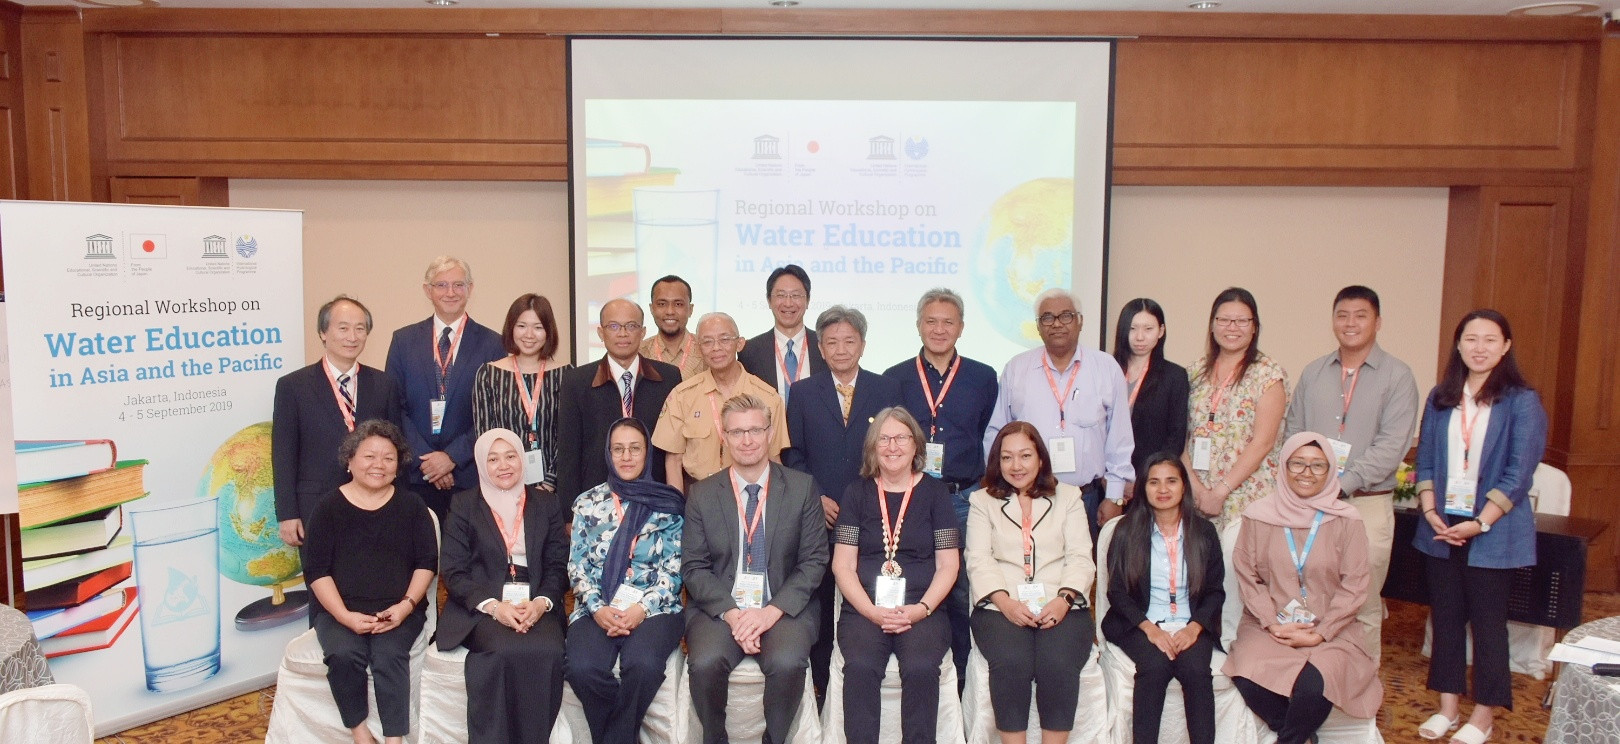 Whereto for Water Education in Asia and the Pacific?